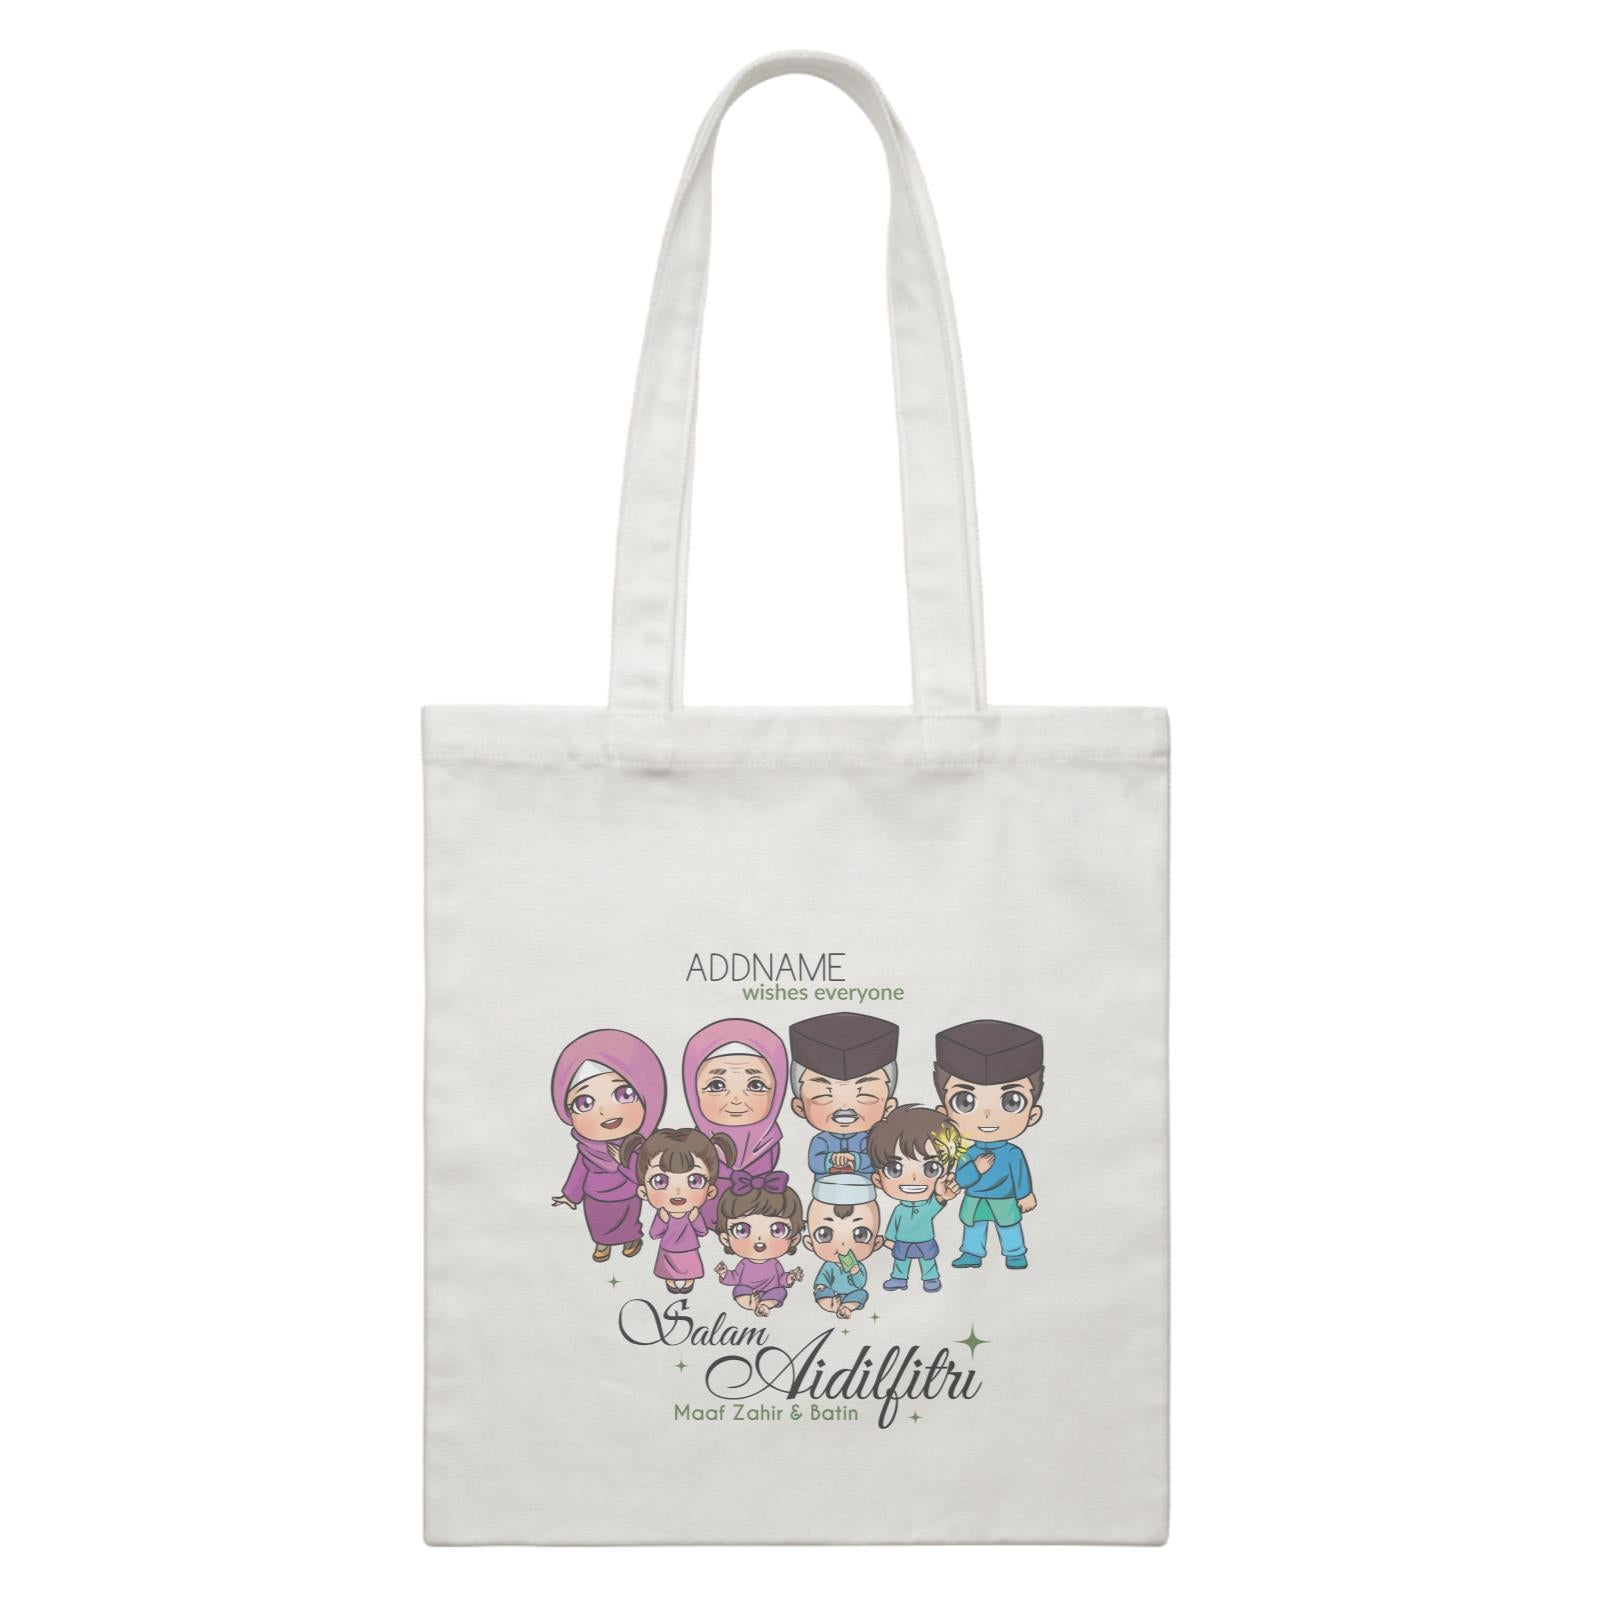 Raya Chibi Big Family Addname Wishes Everyone Salam Aidilfitri Maaf Zahir & Batin Accessories White Canvas Bag